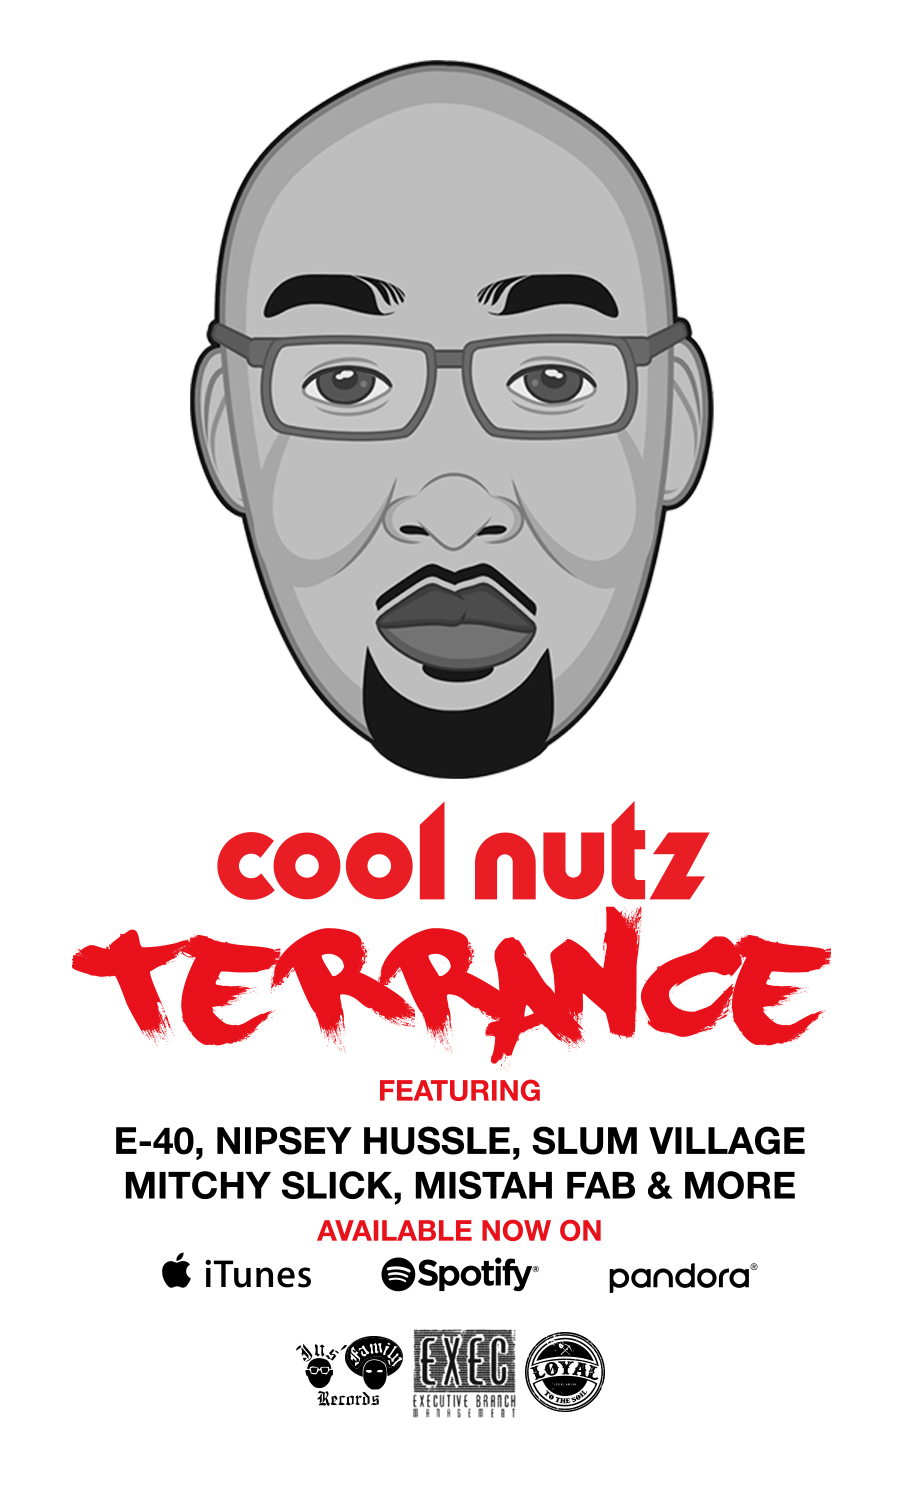 COOL_NUTZ_TERRANCE_OUT_NOW_3x5_FLYER